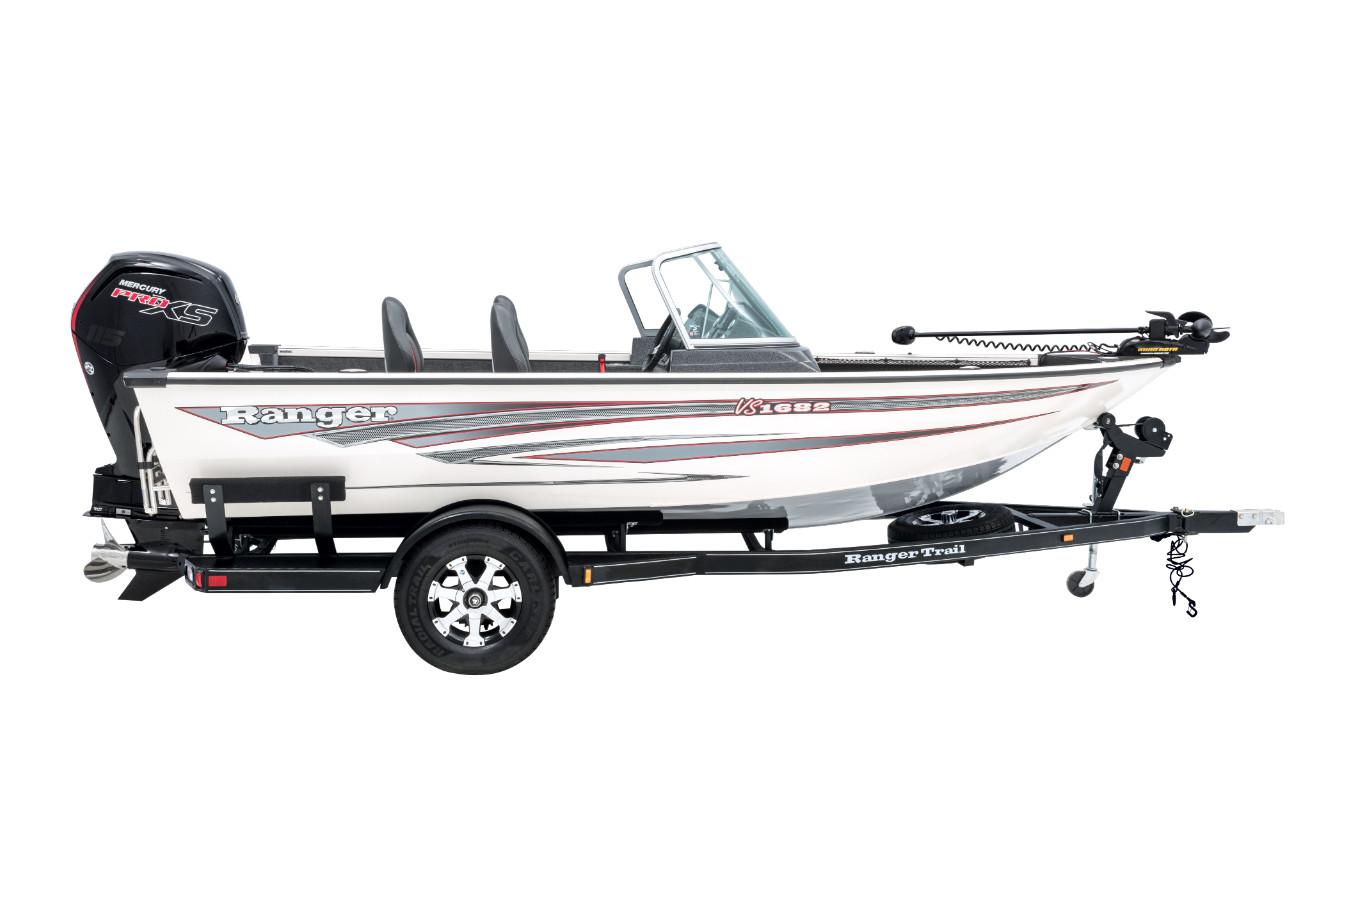 New Ranger Vs Wt Power Boats Outboard In Eastland